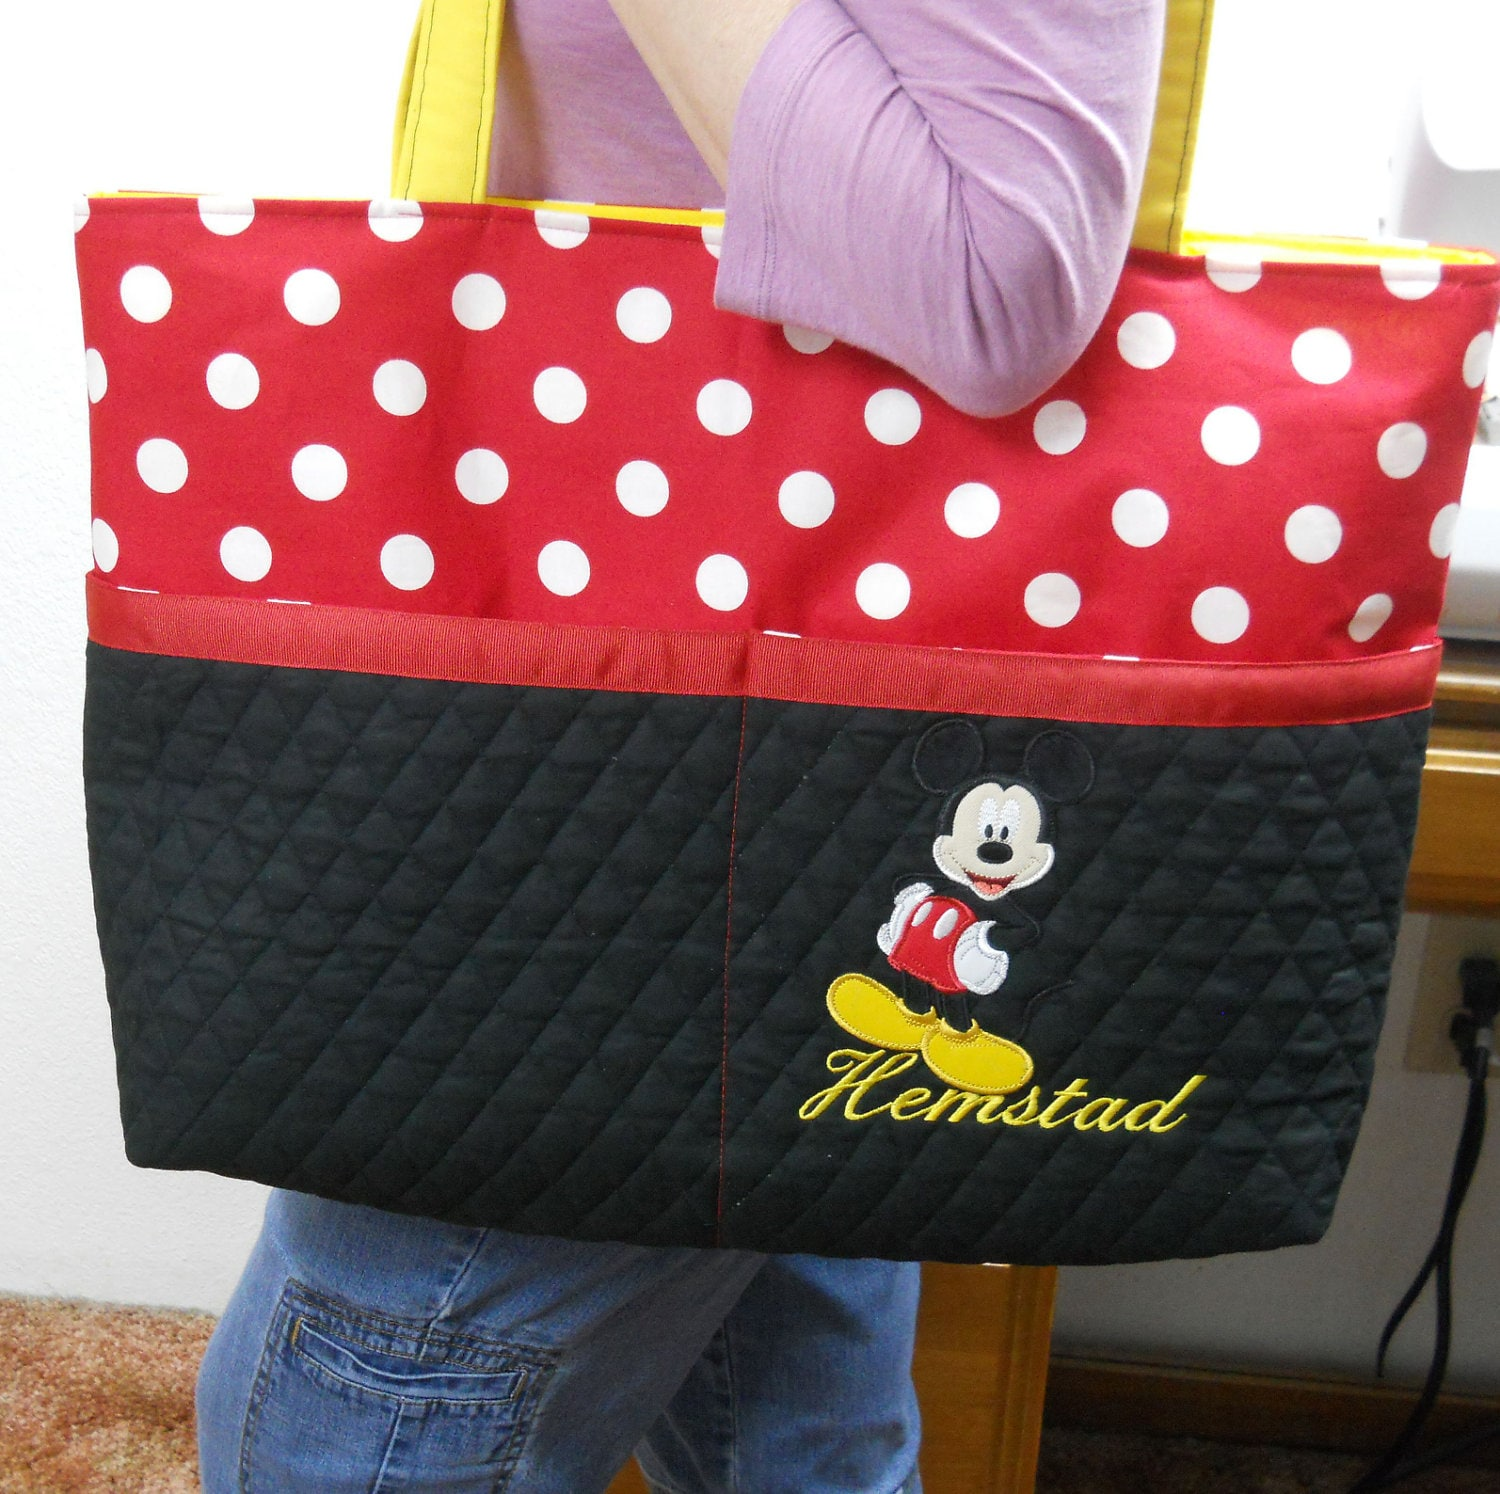 Items similar to mickey mouse & disney tote bags on Etsy